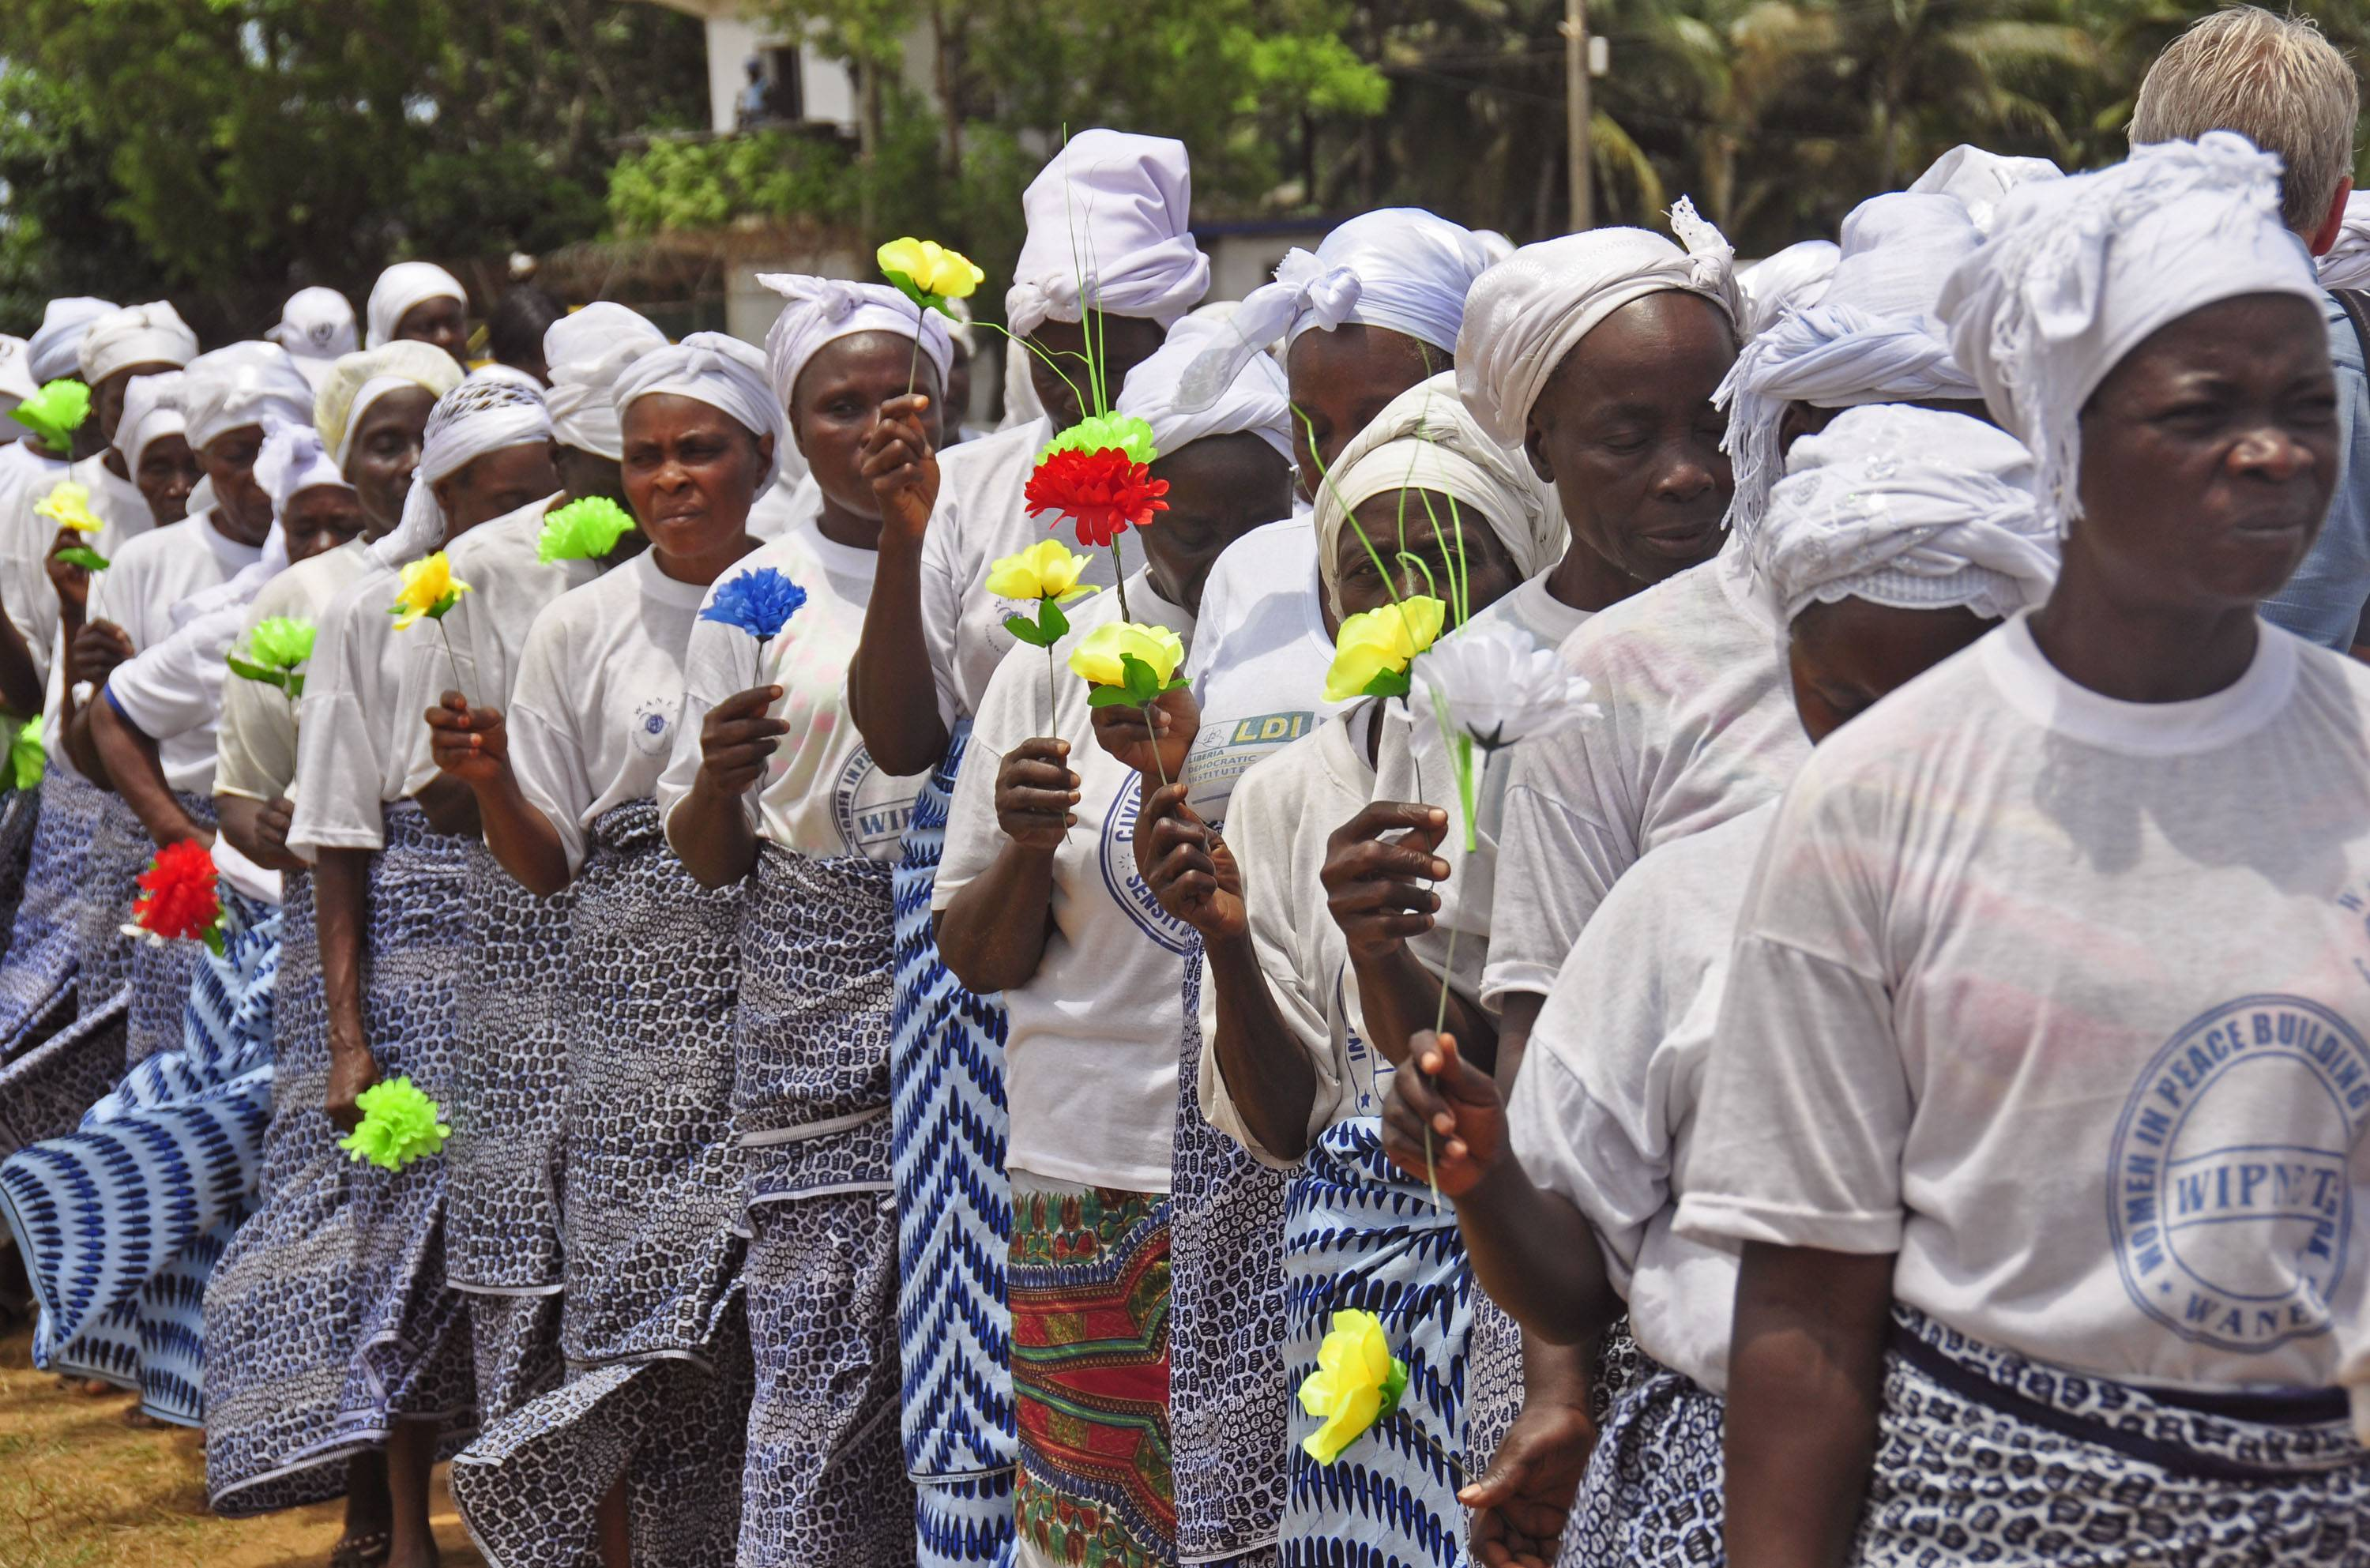 Liberia women walk Thursday after  praying for help with the Ebola virus, in the city of  Monrovia, Liberia.